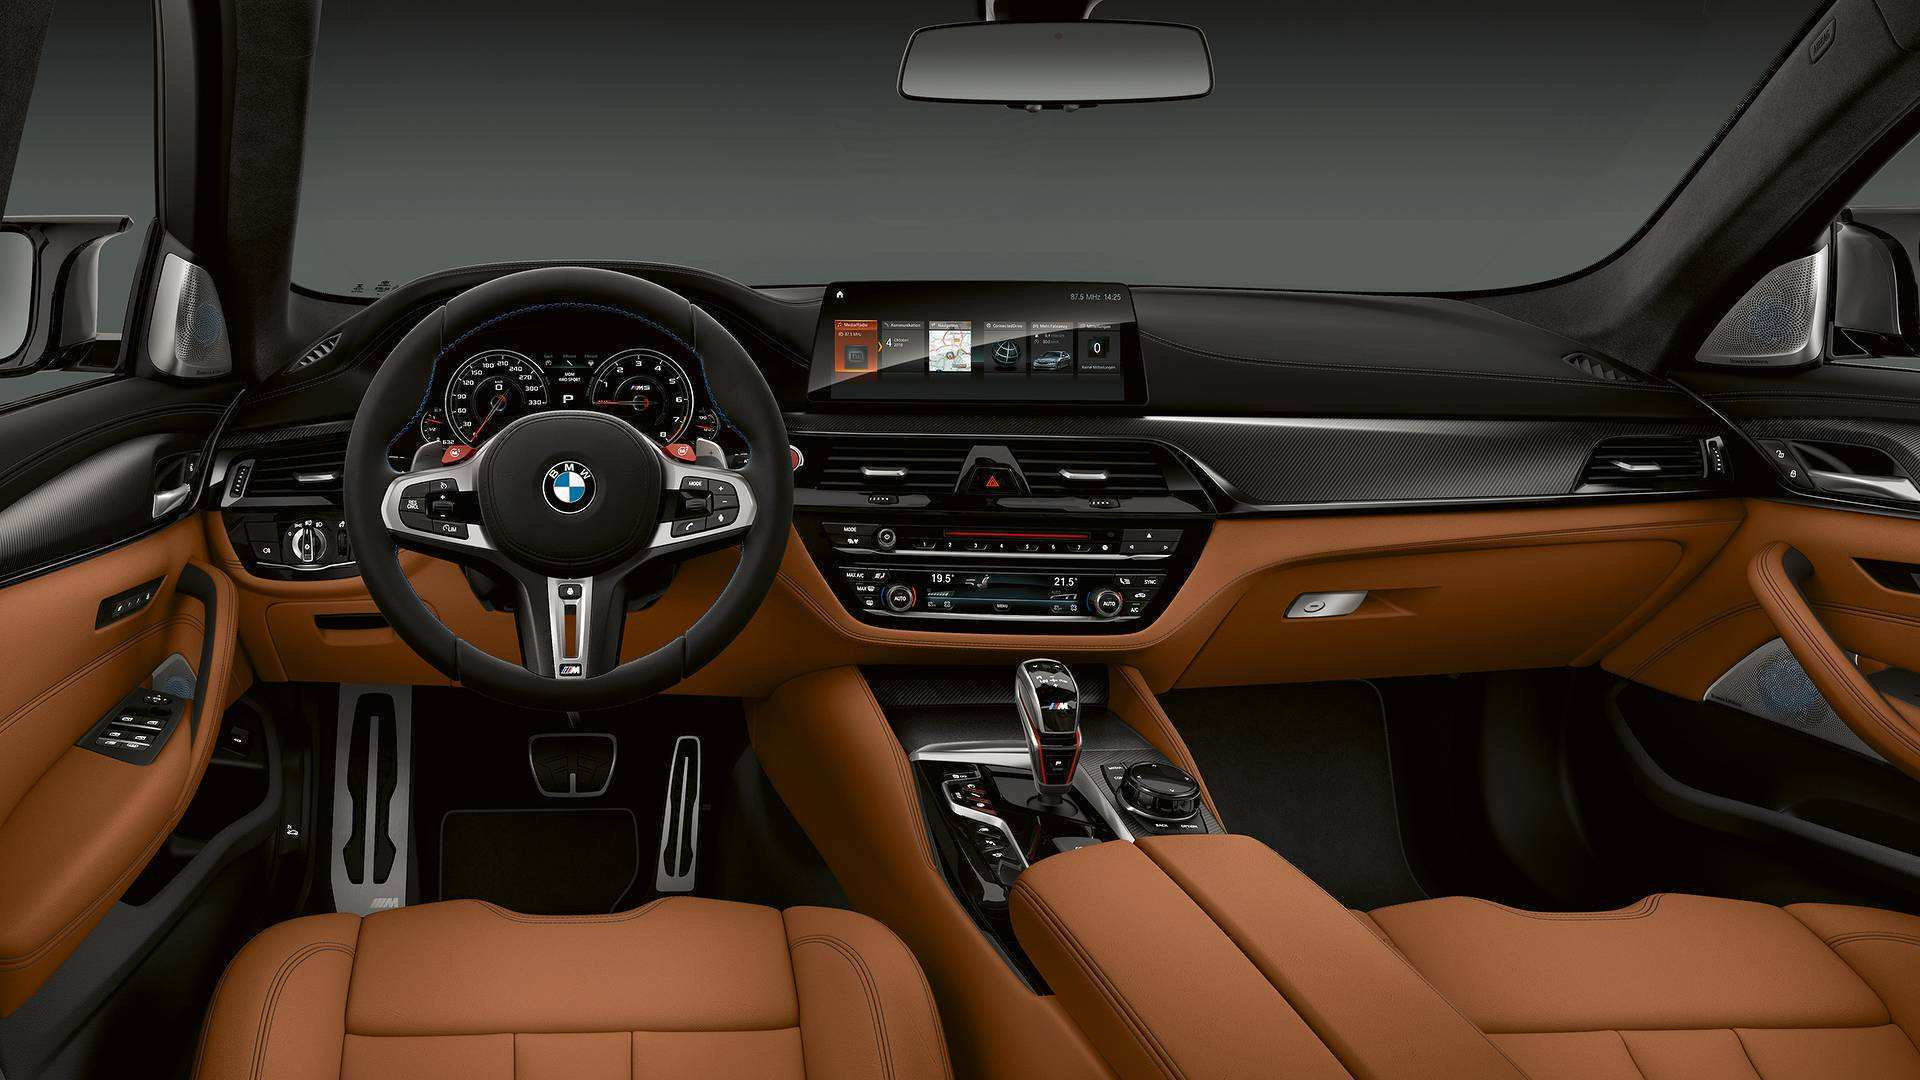 96 Best Review The 2019 Bmw Dashboard Specs And Review Spesification with The 2019 Bmw Dashboard Specs And Review